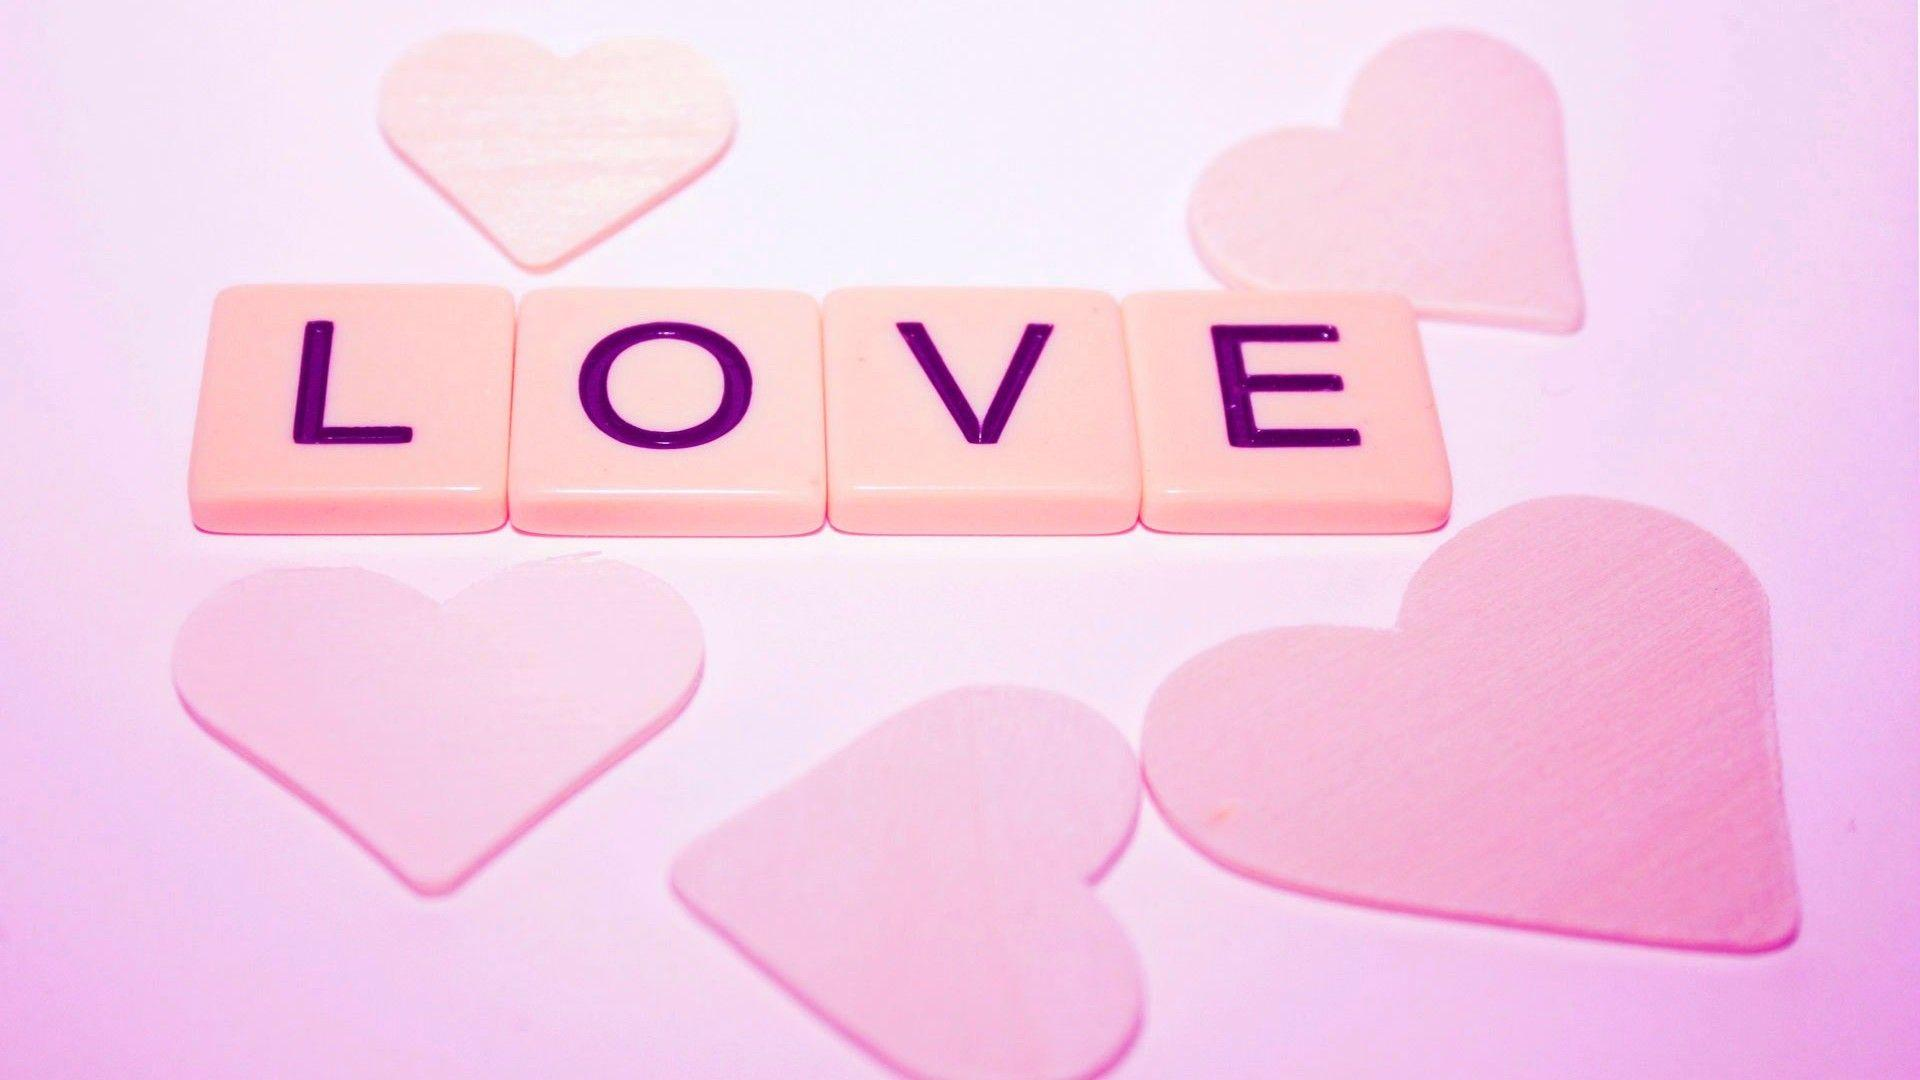 Sweet Love Desktop Wallpaper : cute Love Backgrounds - Wallpaper cave